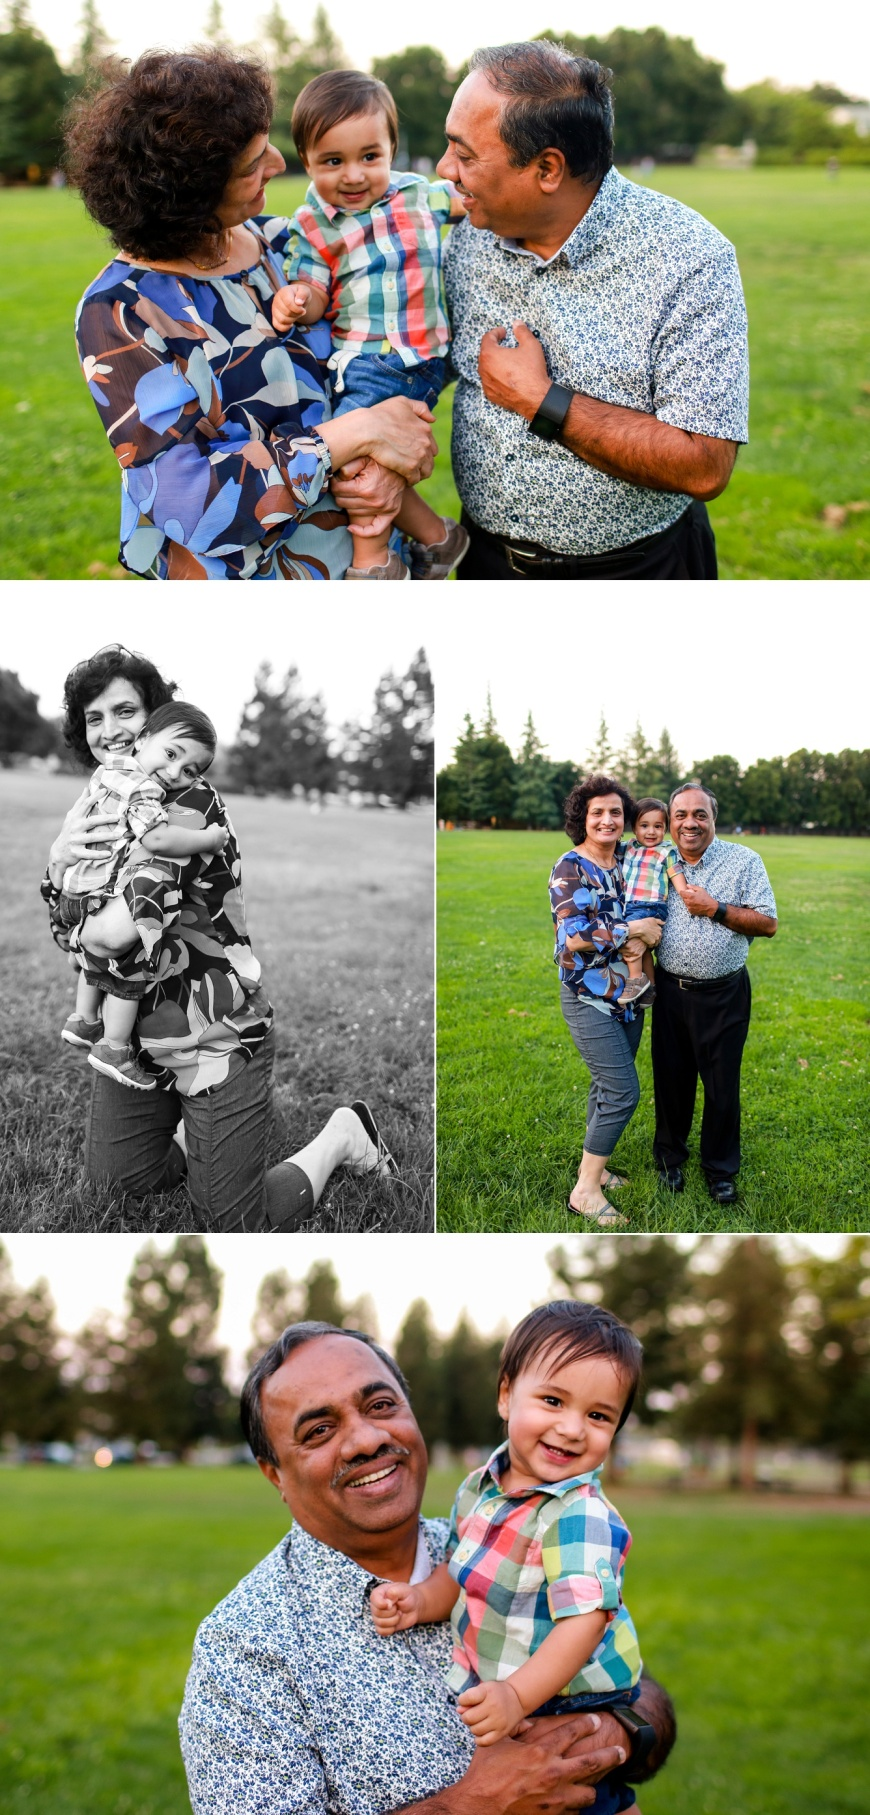 Jollyman-Park-Cupertino-Family-Photographer_1030.jpg